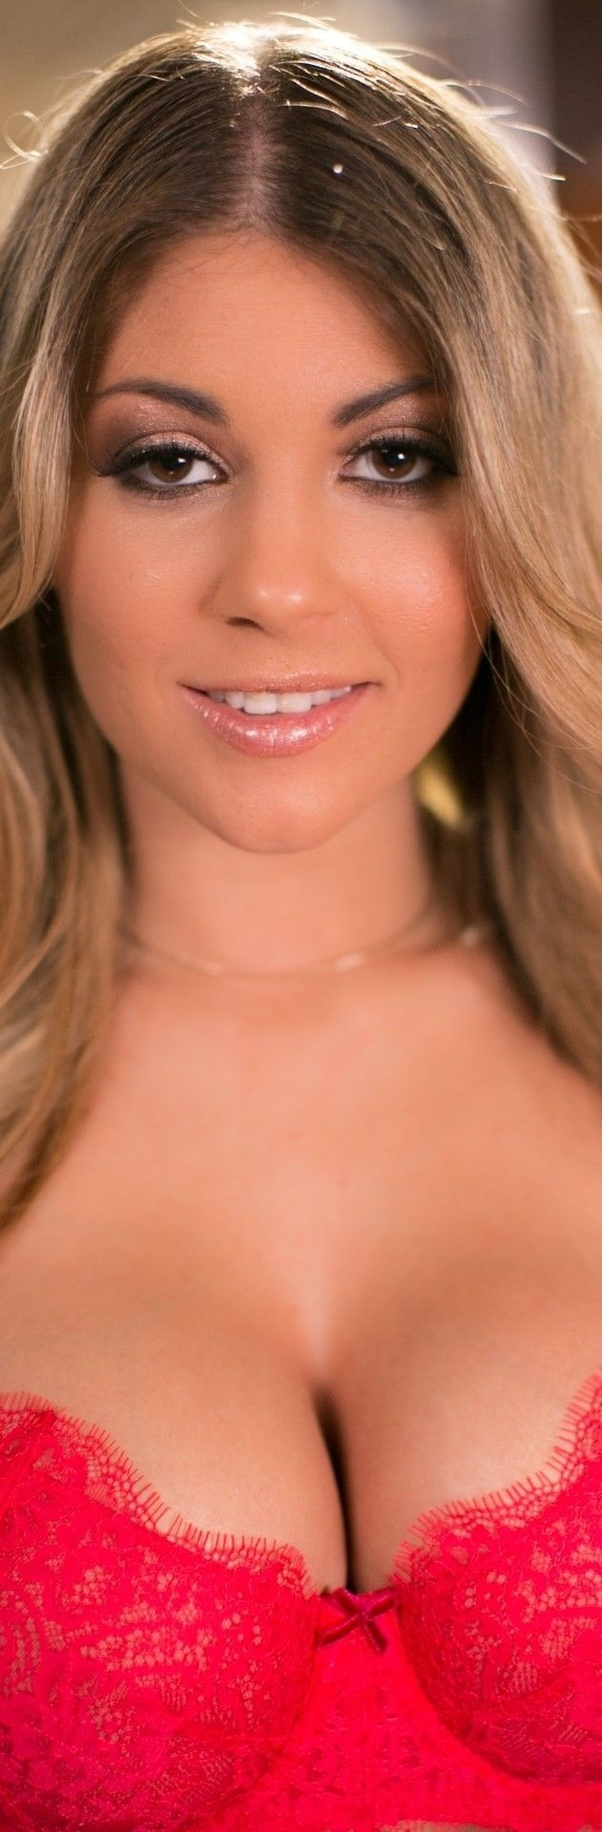 What are some jaw-dropping pictures of Kayla Kayden? - Quora